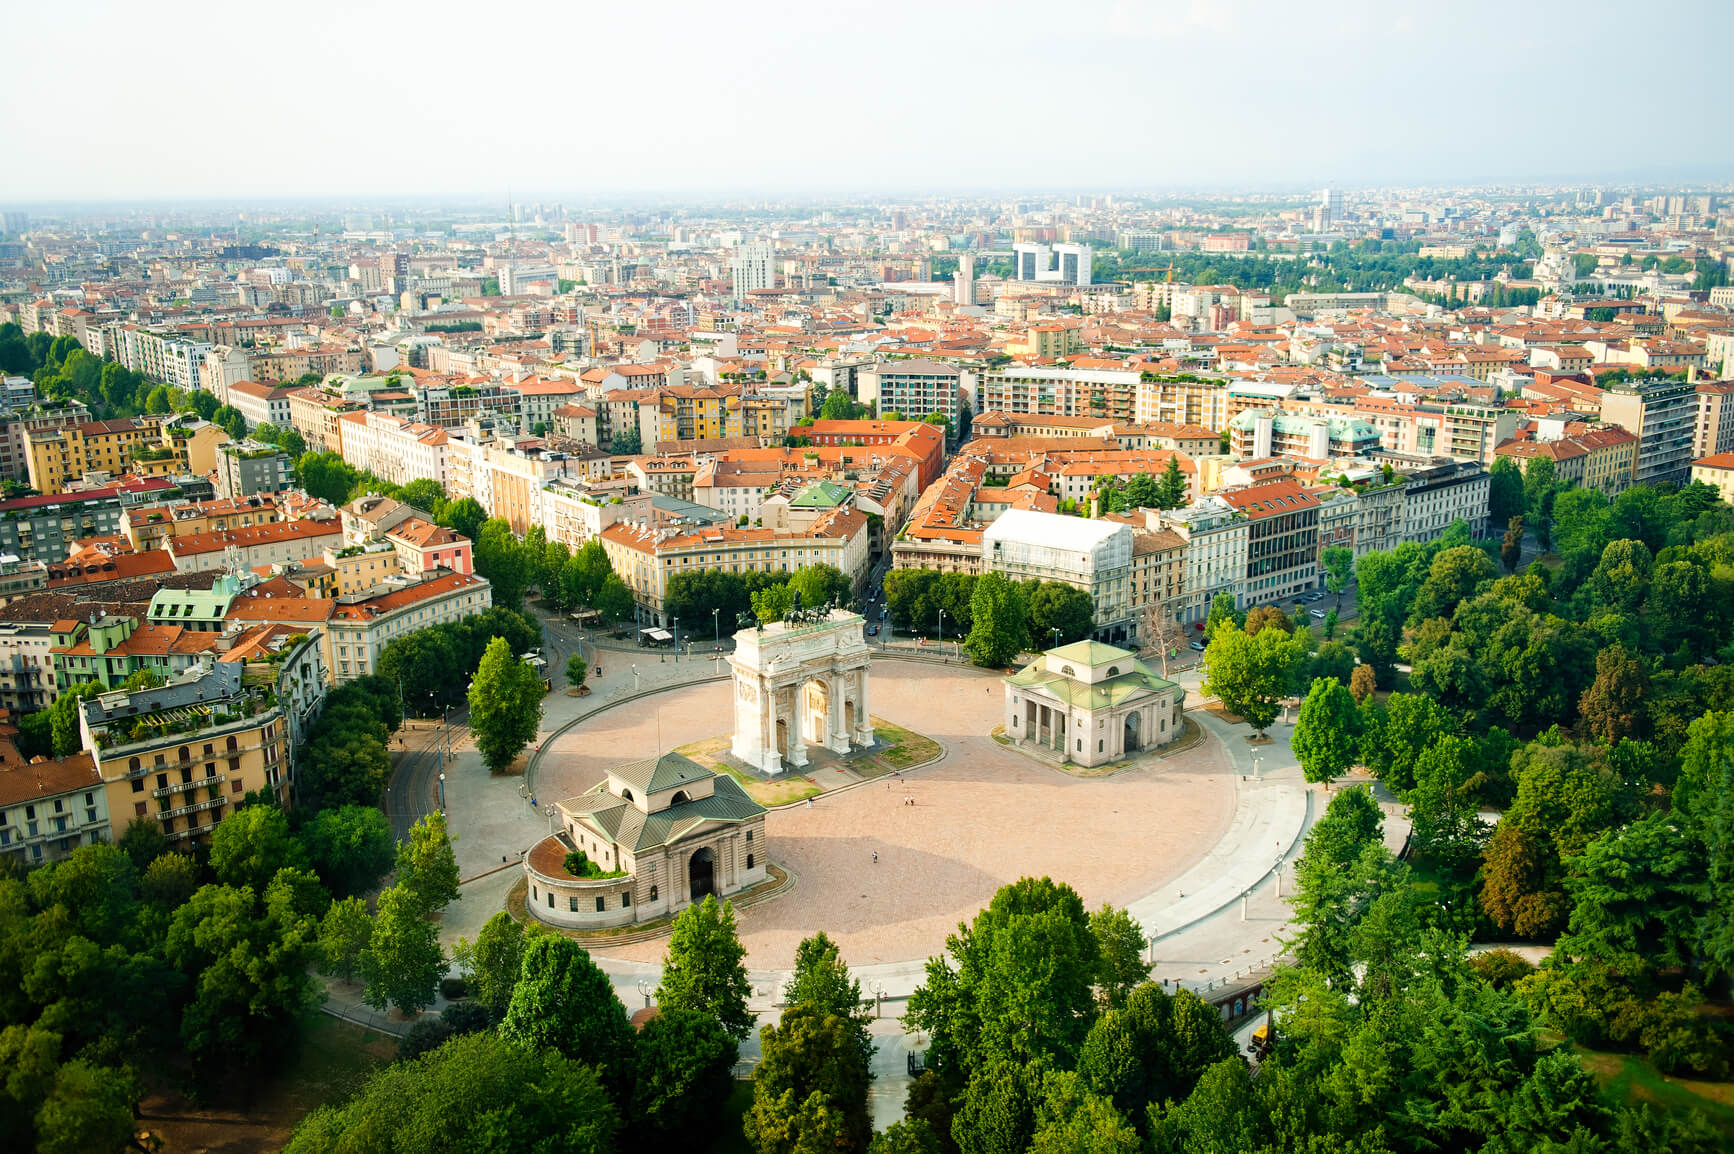 Lagos, Nigeria to Milan, Italy for only $406 USD roundtrip